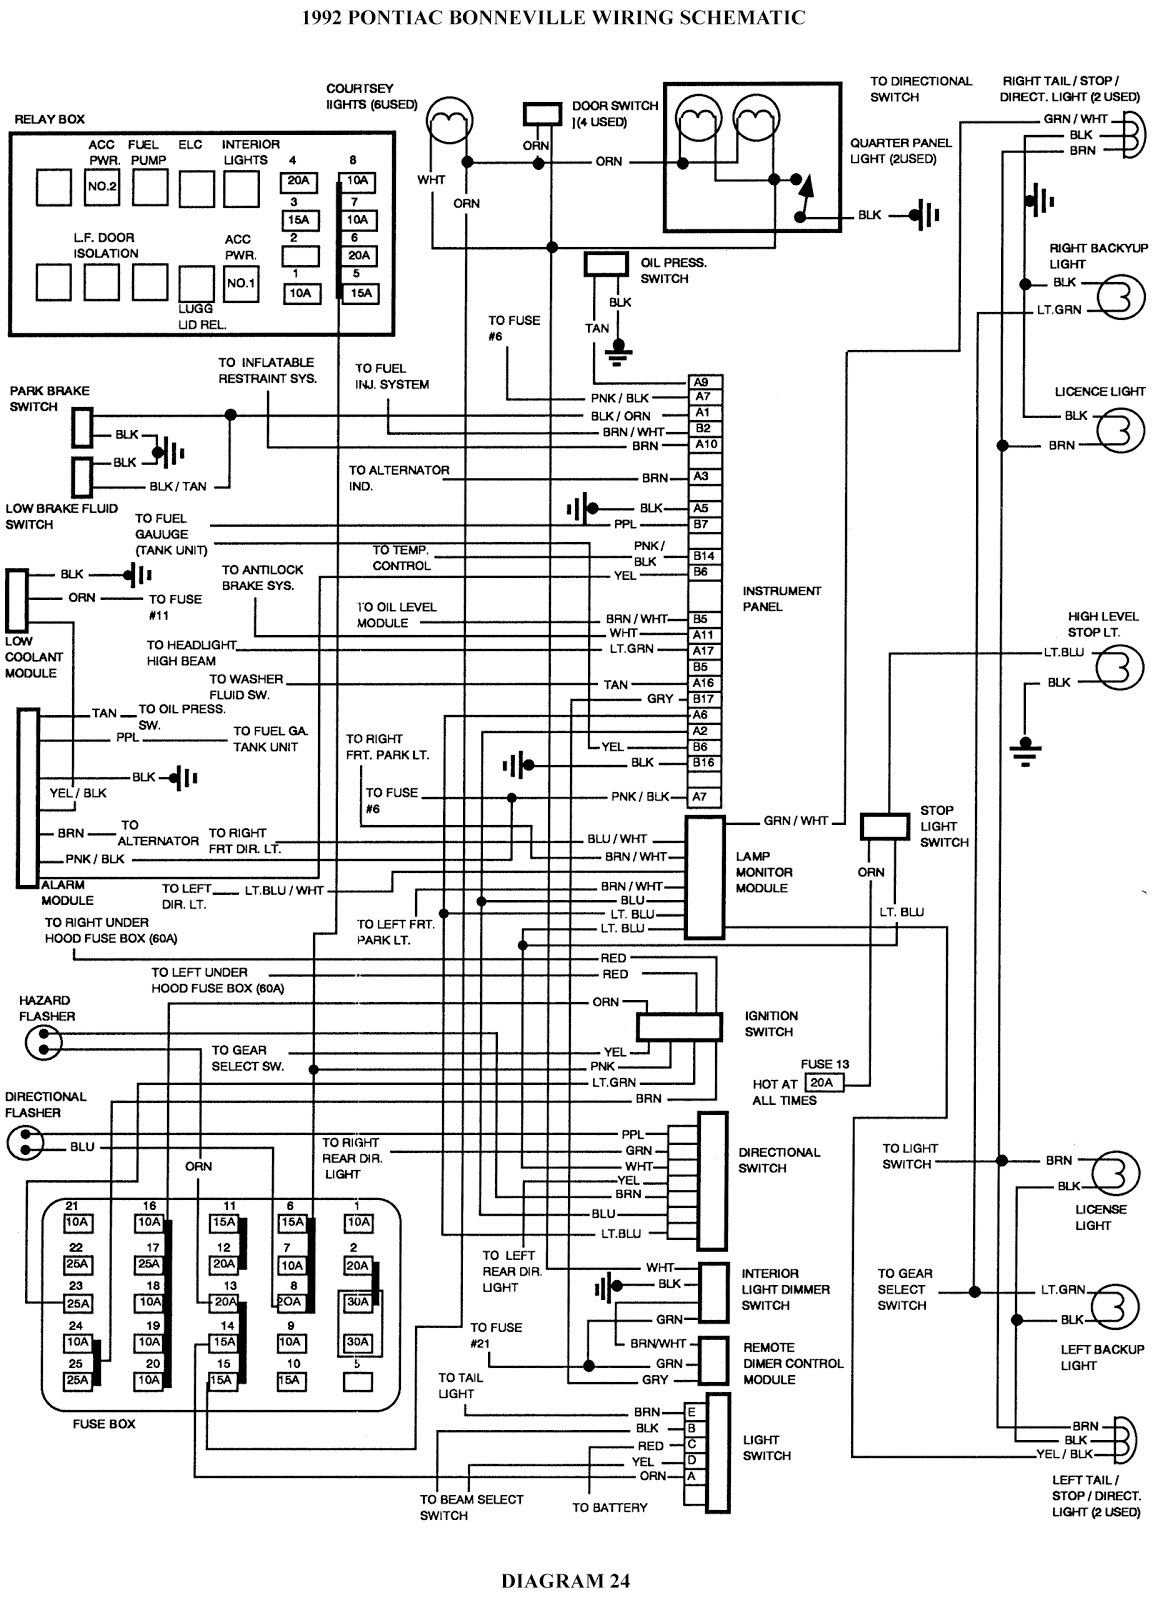 98 f150 alarm wiring diagram 12v 30 amp relay 1992 pontiac bonneville schematic | diagrams solutions